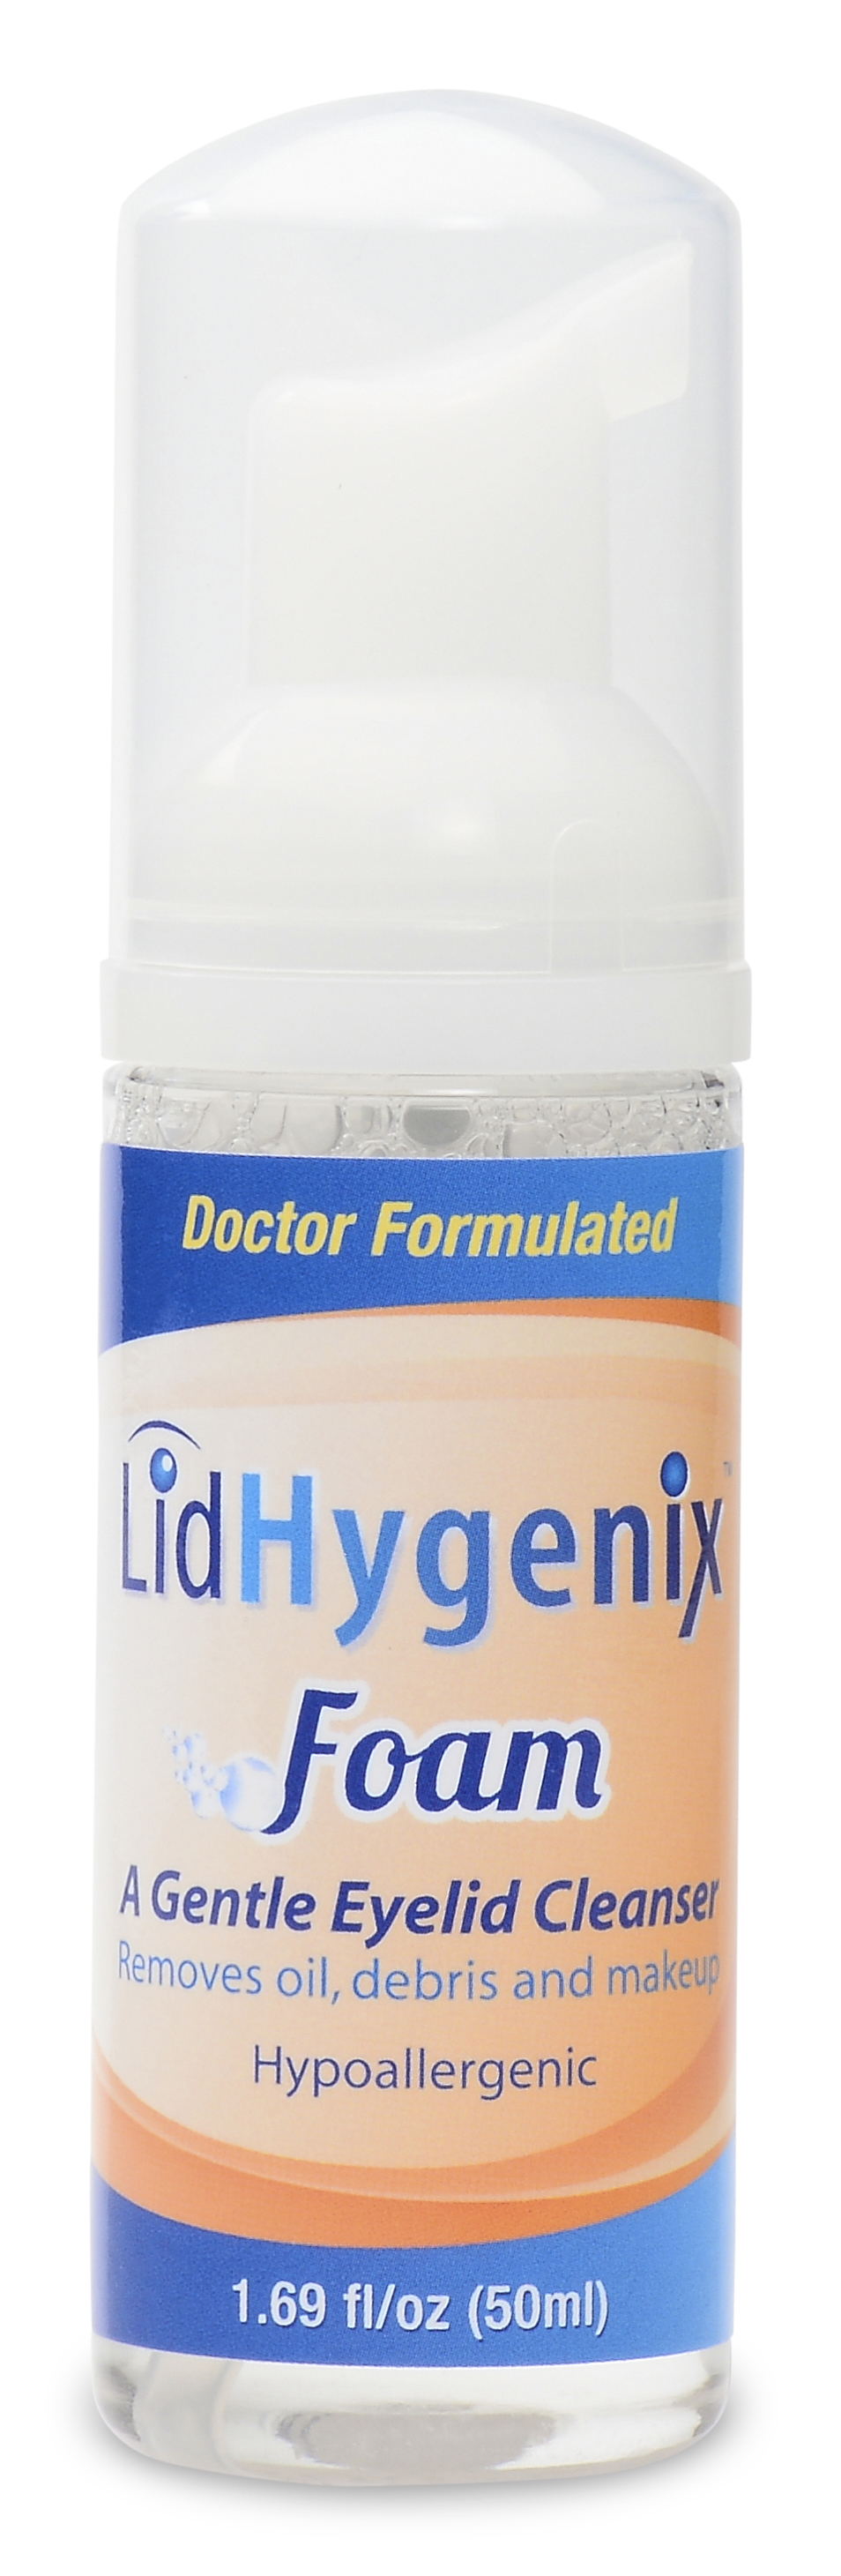 Lid Hygenix Foam bottle picture.jpg